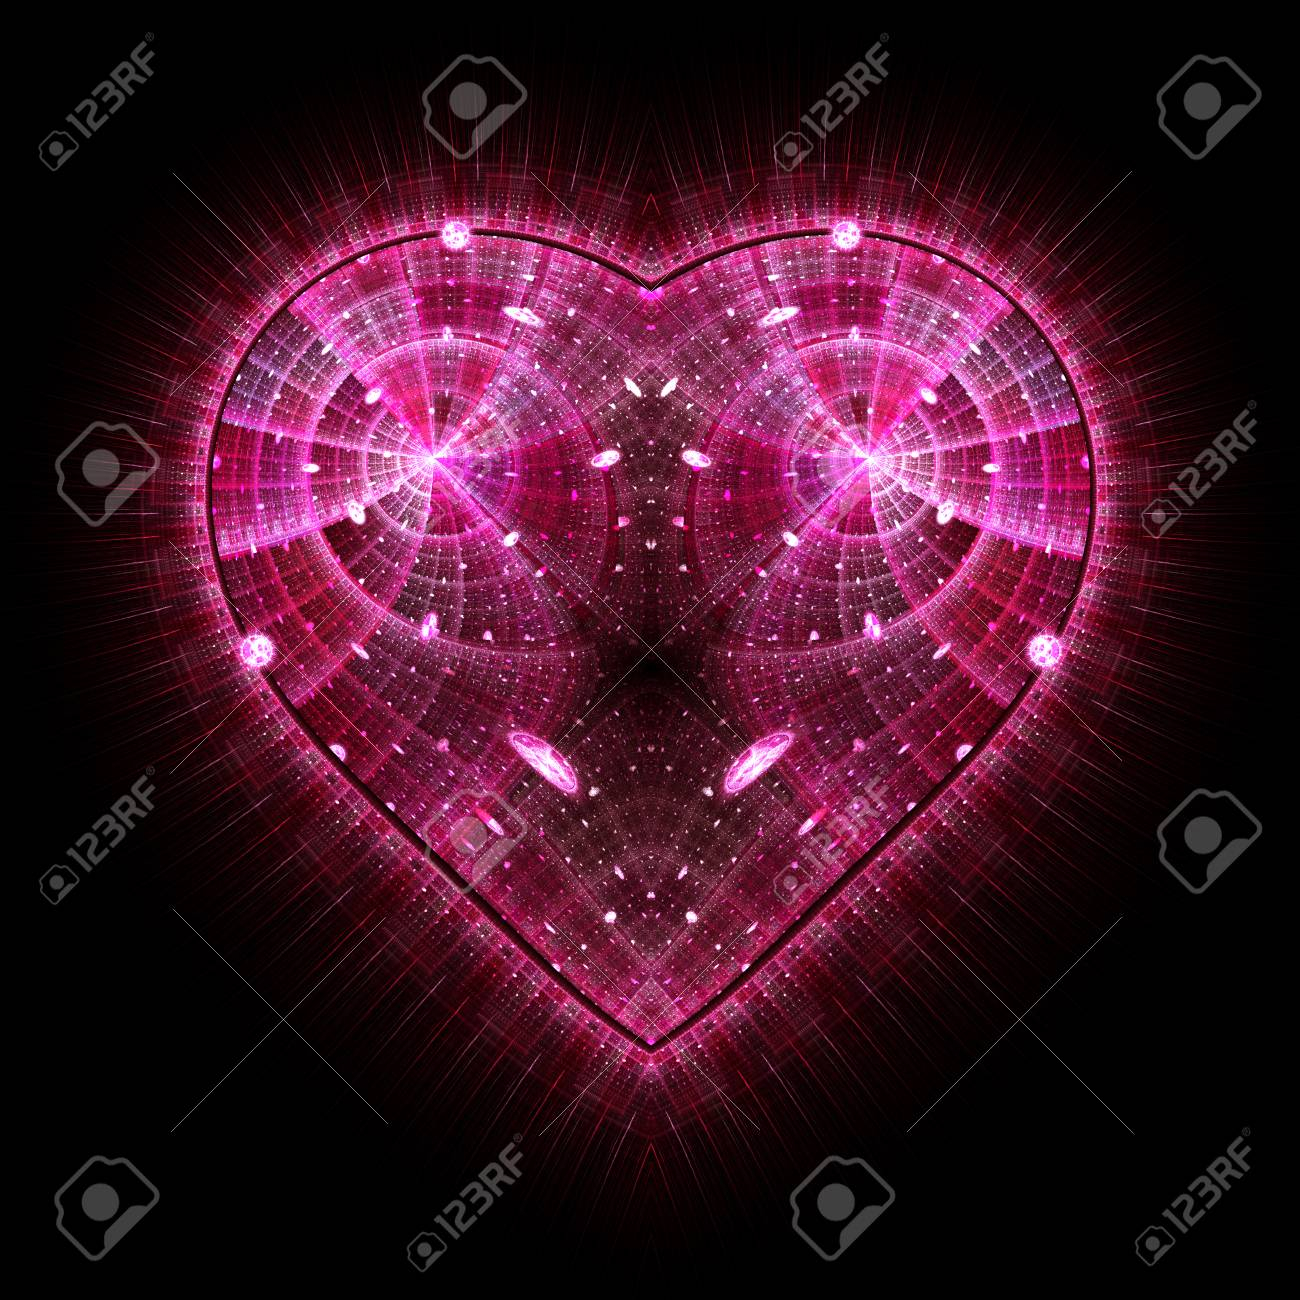 photo burning and beating heart valentine s day background an abstract puter generated modern fractal d